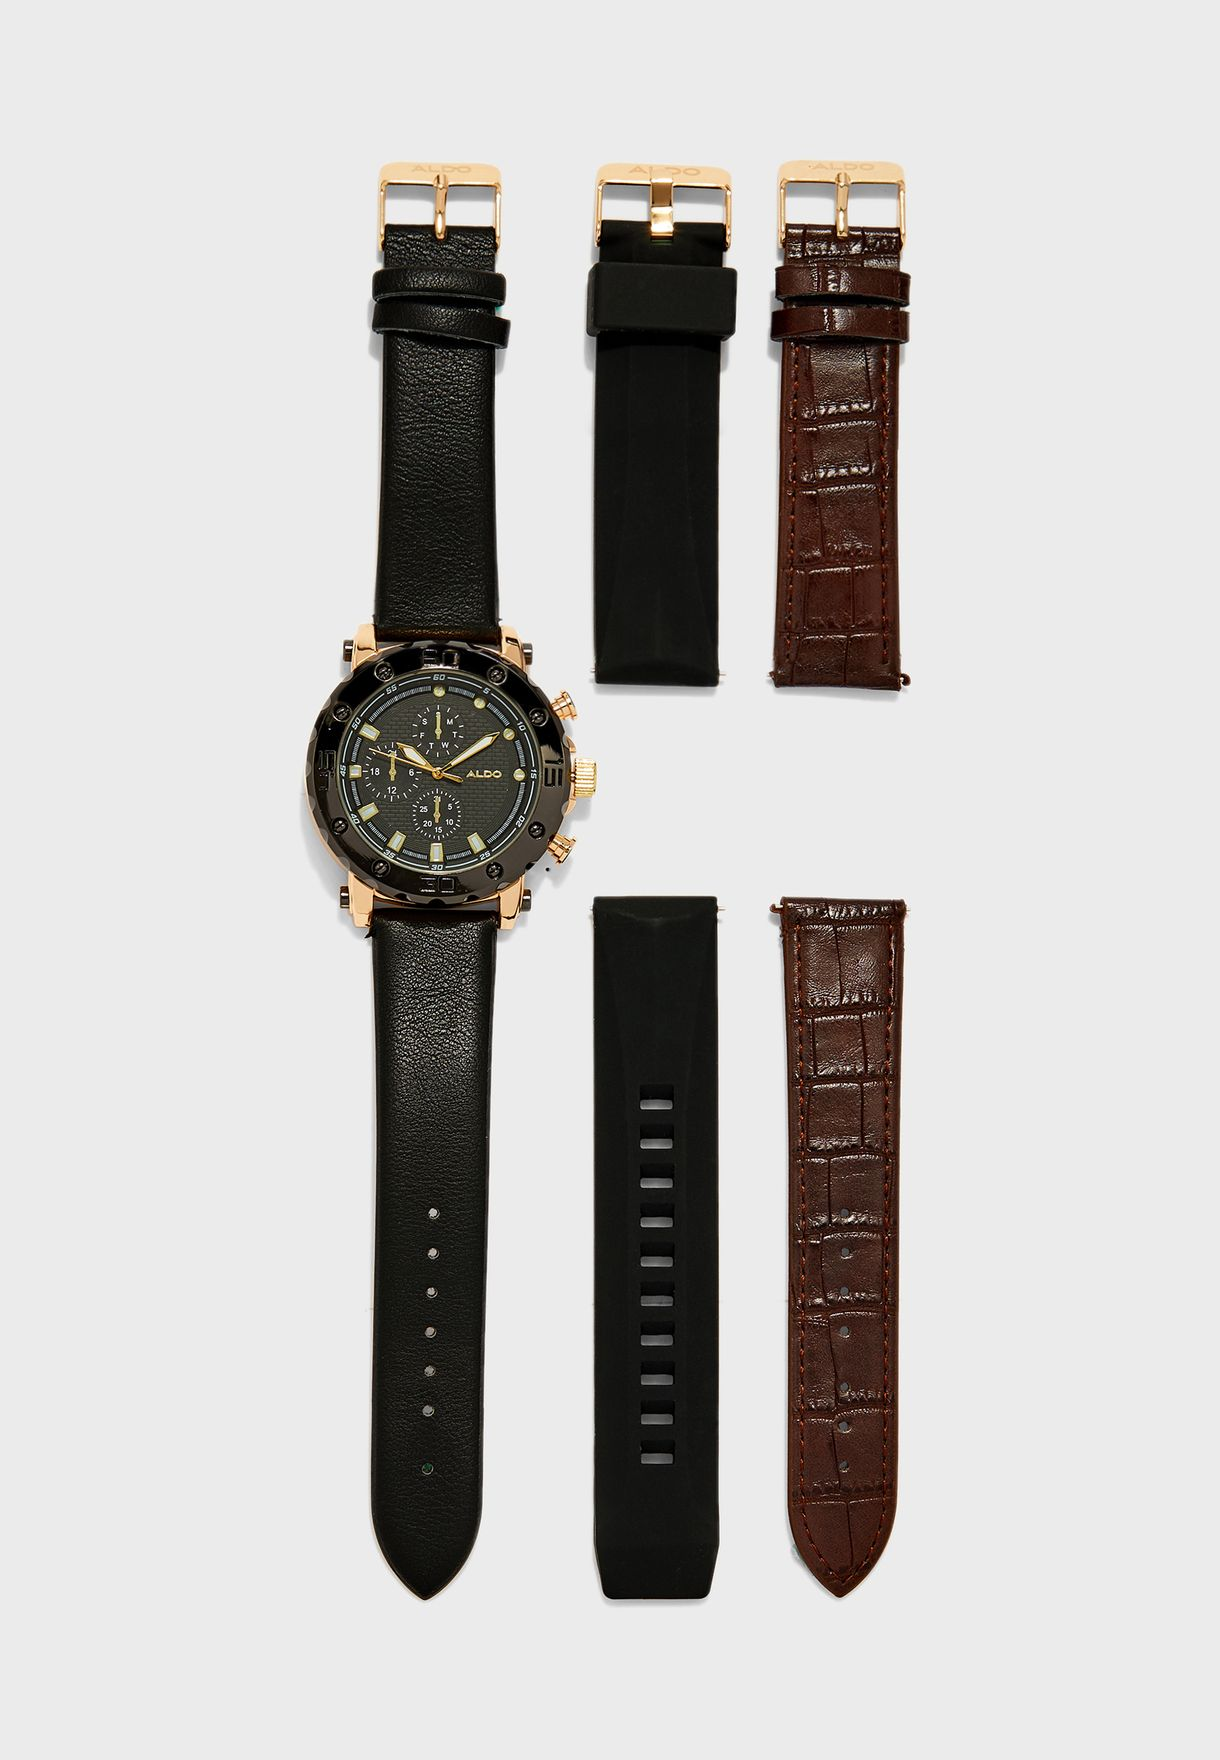 Mirigosien Analog Watch